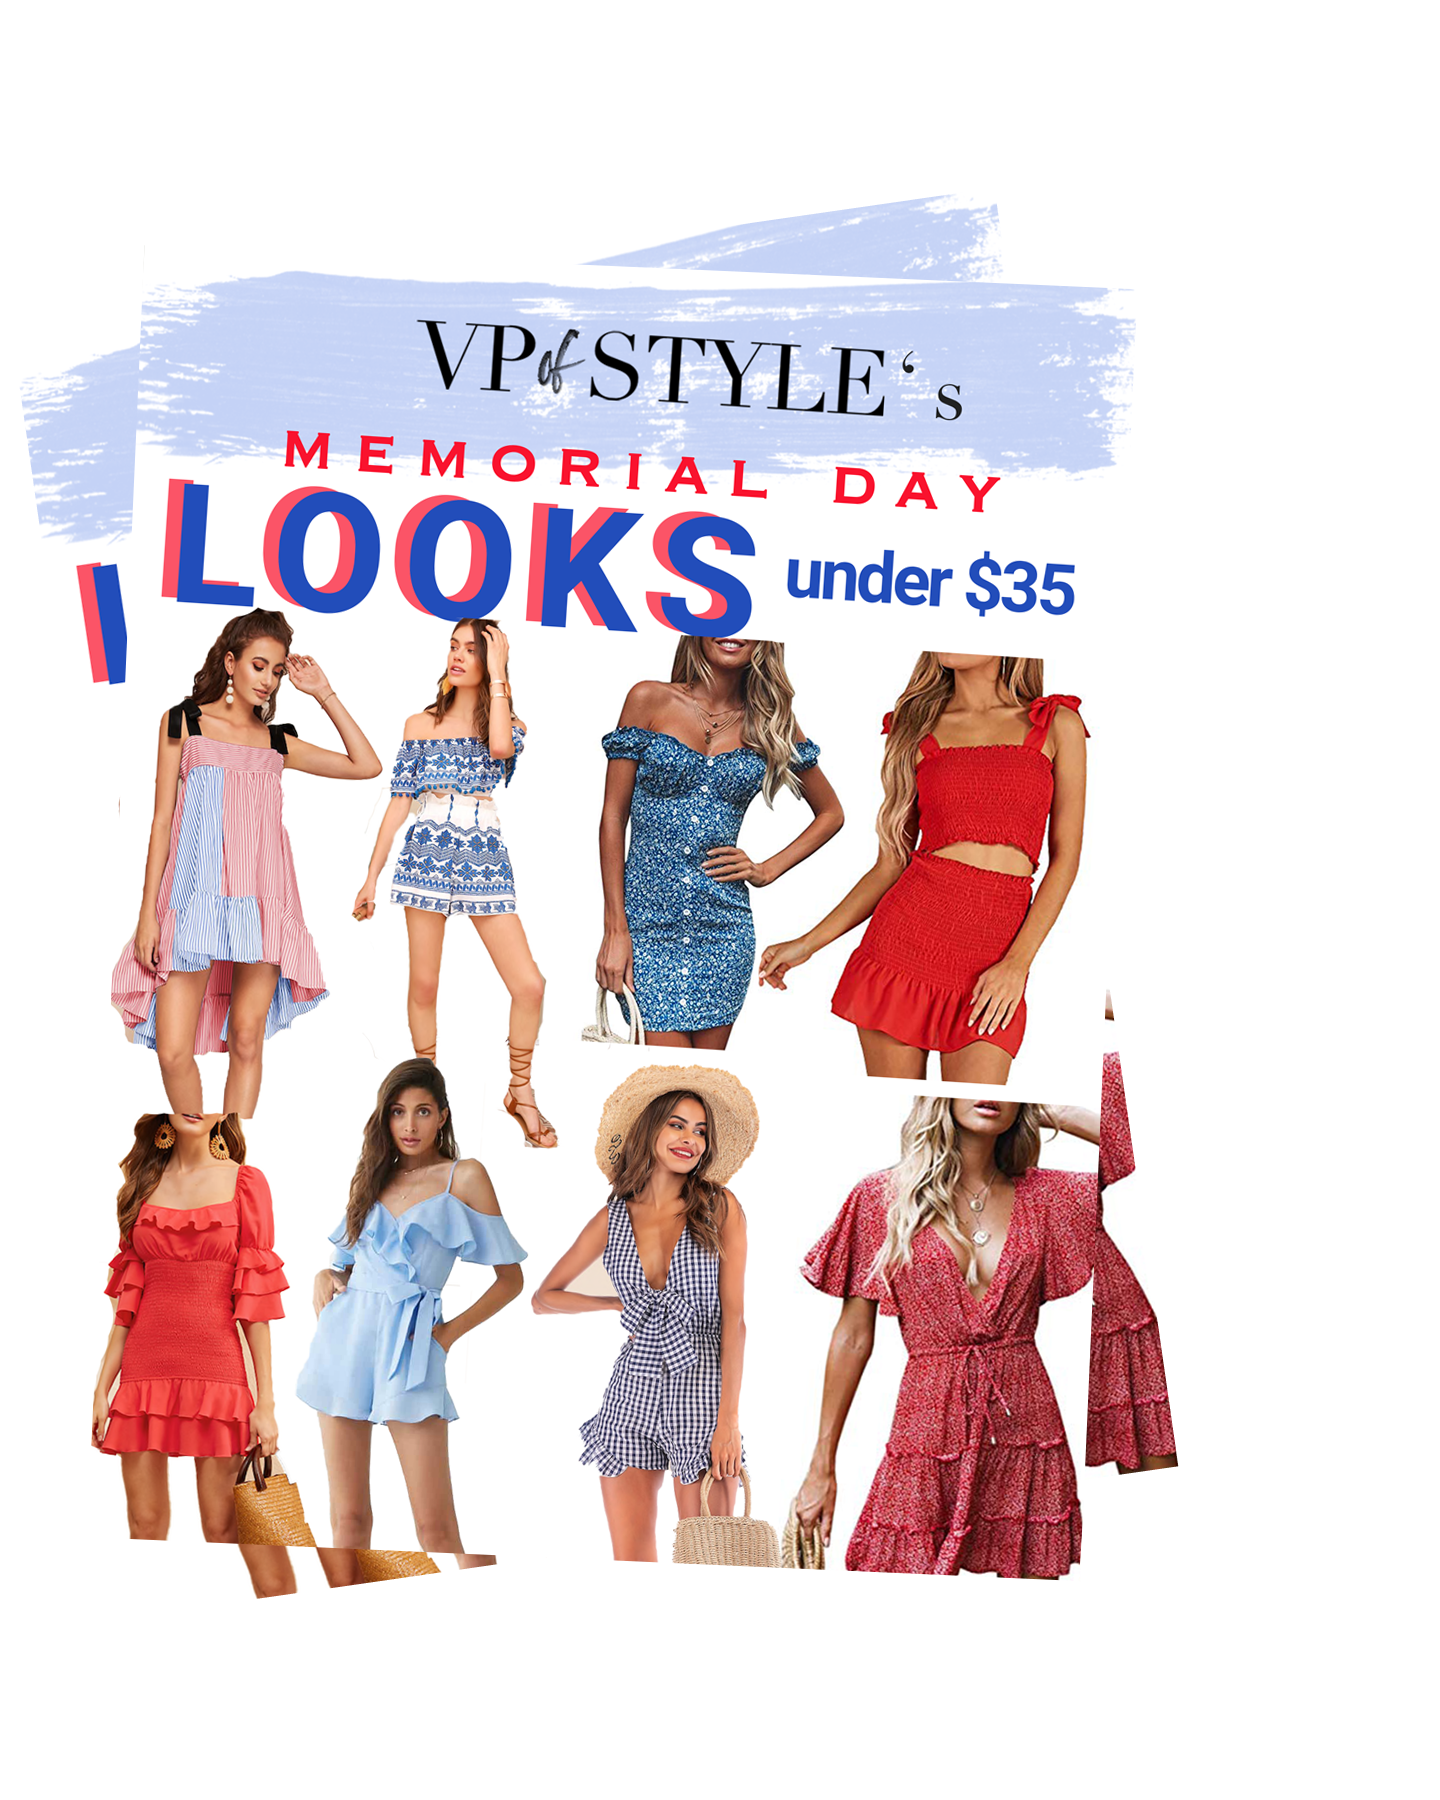 WHAT TO WEAR - Memorial Day LOOKS FOR UNDER $35 - Memorial Day is fast approaching and if you're on the hunt for a budget friendly look, I've got you covered! All of these pieces are under $35 and hard to pass up!